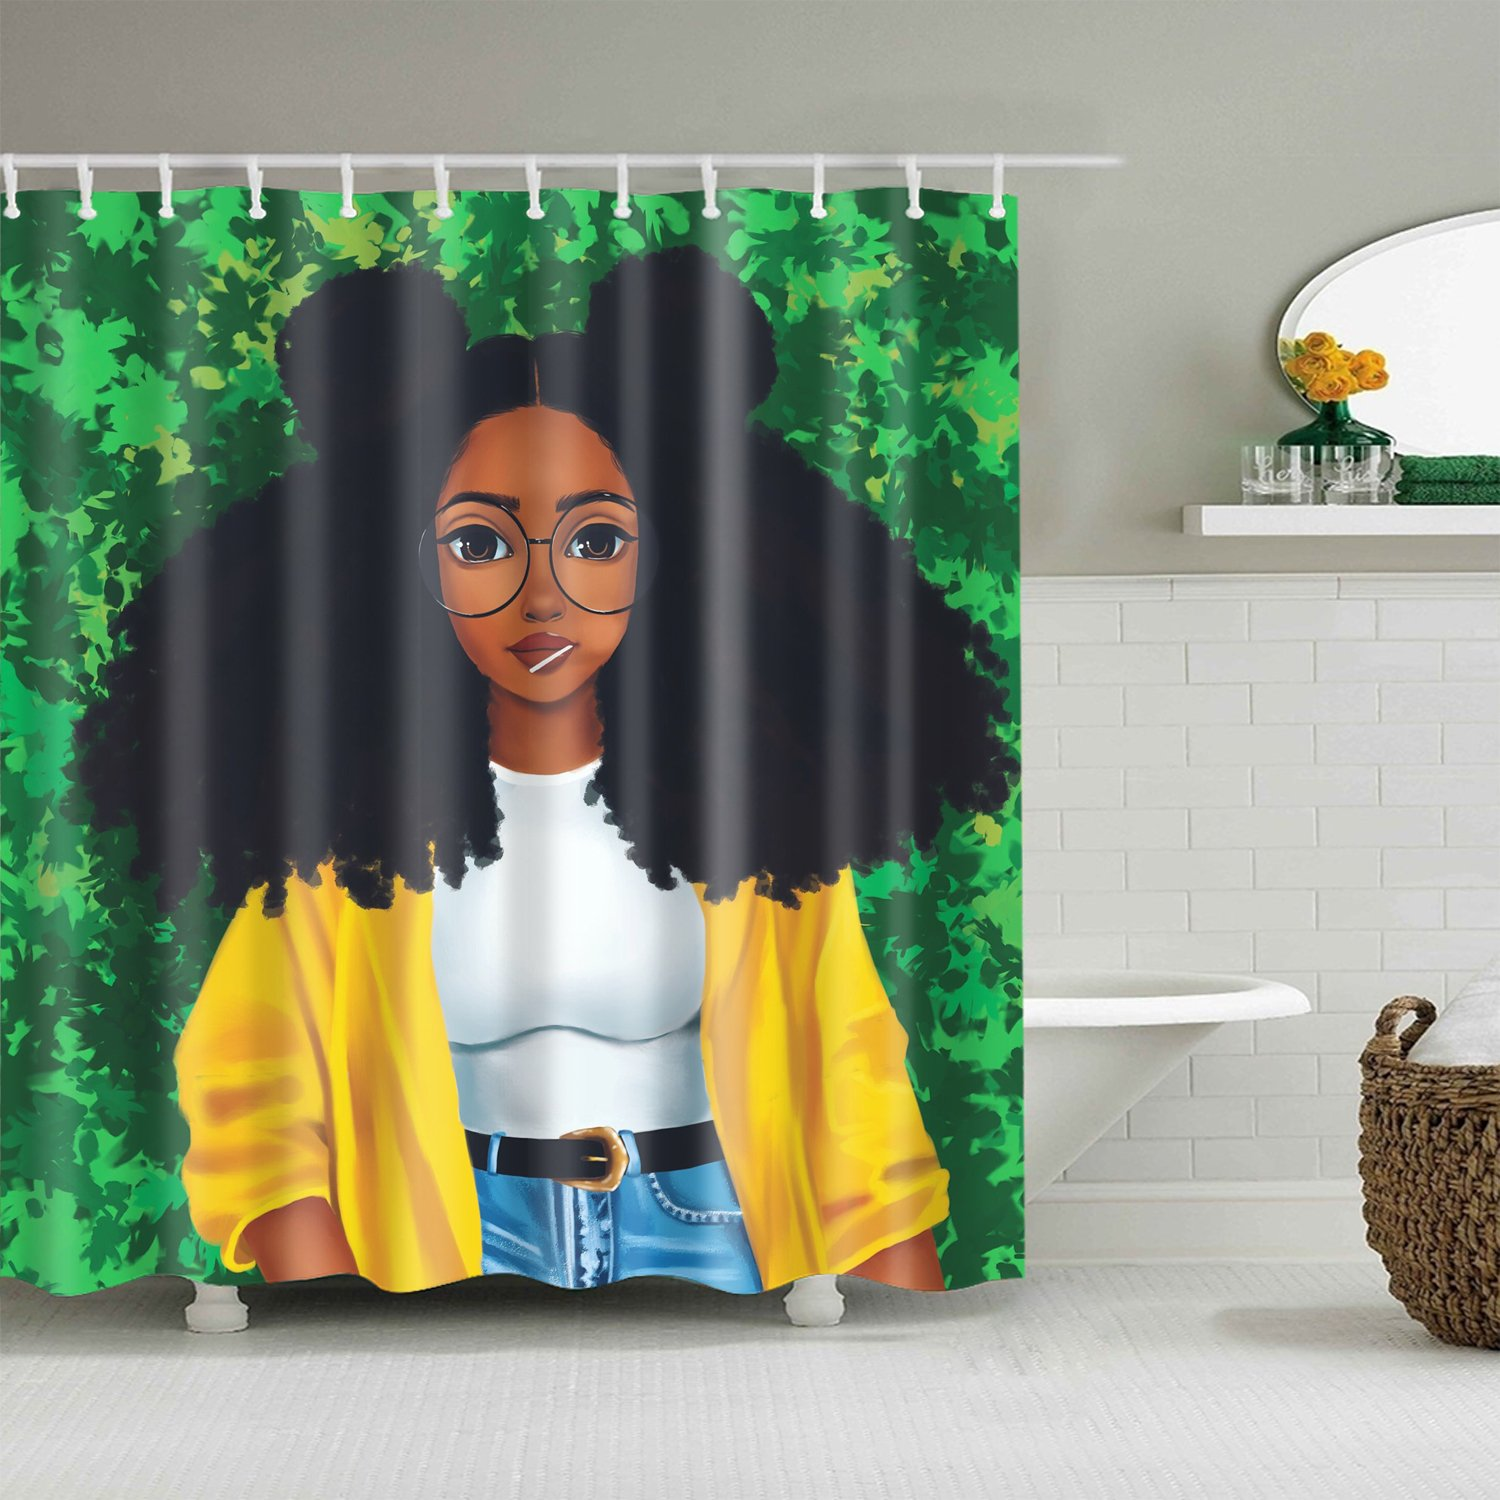 Afro Hairstyle Black Girl With Lollipop Shower Curtain Bathroom